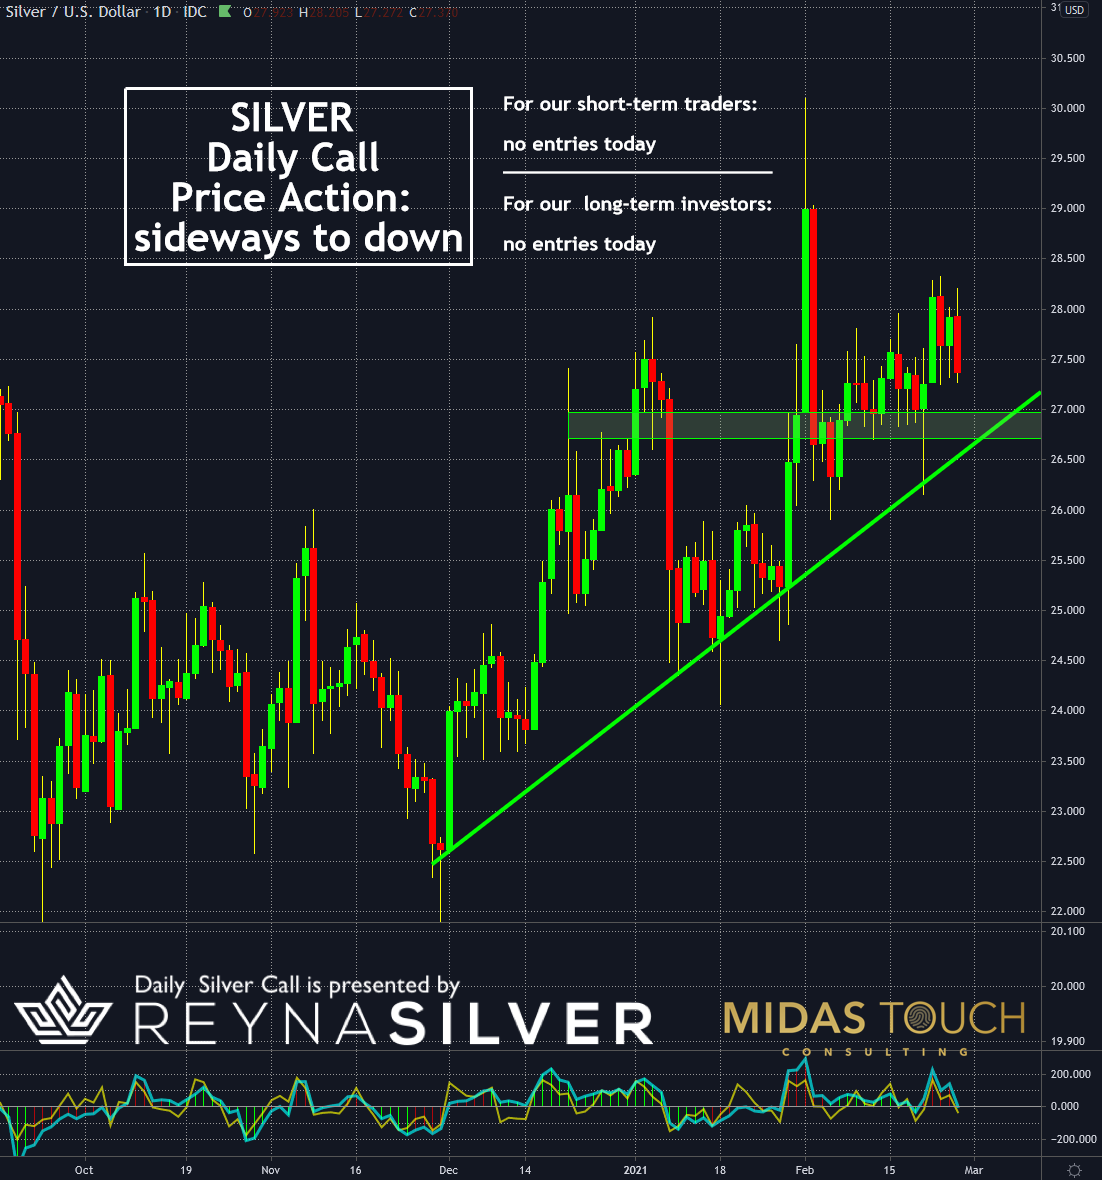 📈 Daily Silver Call presented by Reyna Silver Corp in collaboration with Midas Touch Consulting (February 26, 2021)  #Silver #SilverSqueeze #Gold #Metals #PreciousMetals #Commodities $RSLV $SLV $SIL $SILJ $GDX $GDXJ https://t.co/eb9F1w2lTE